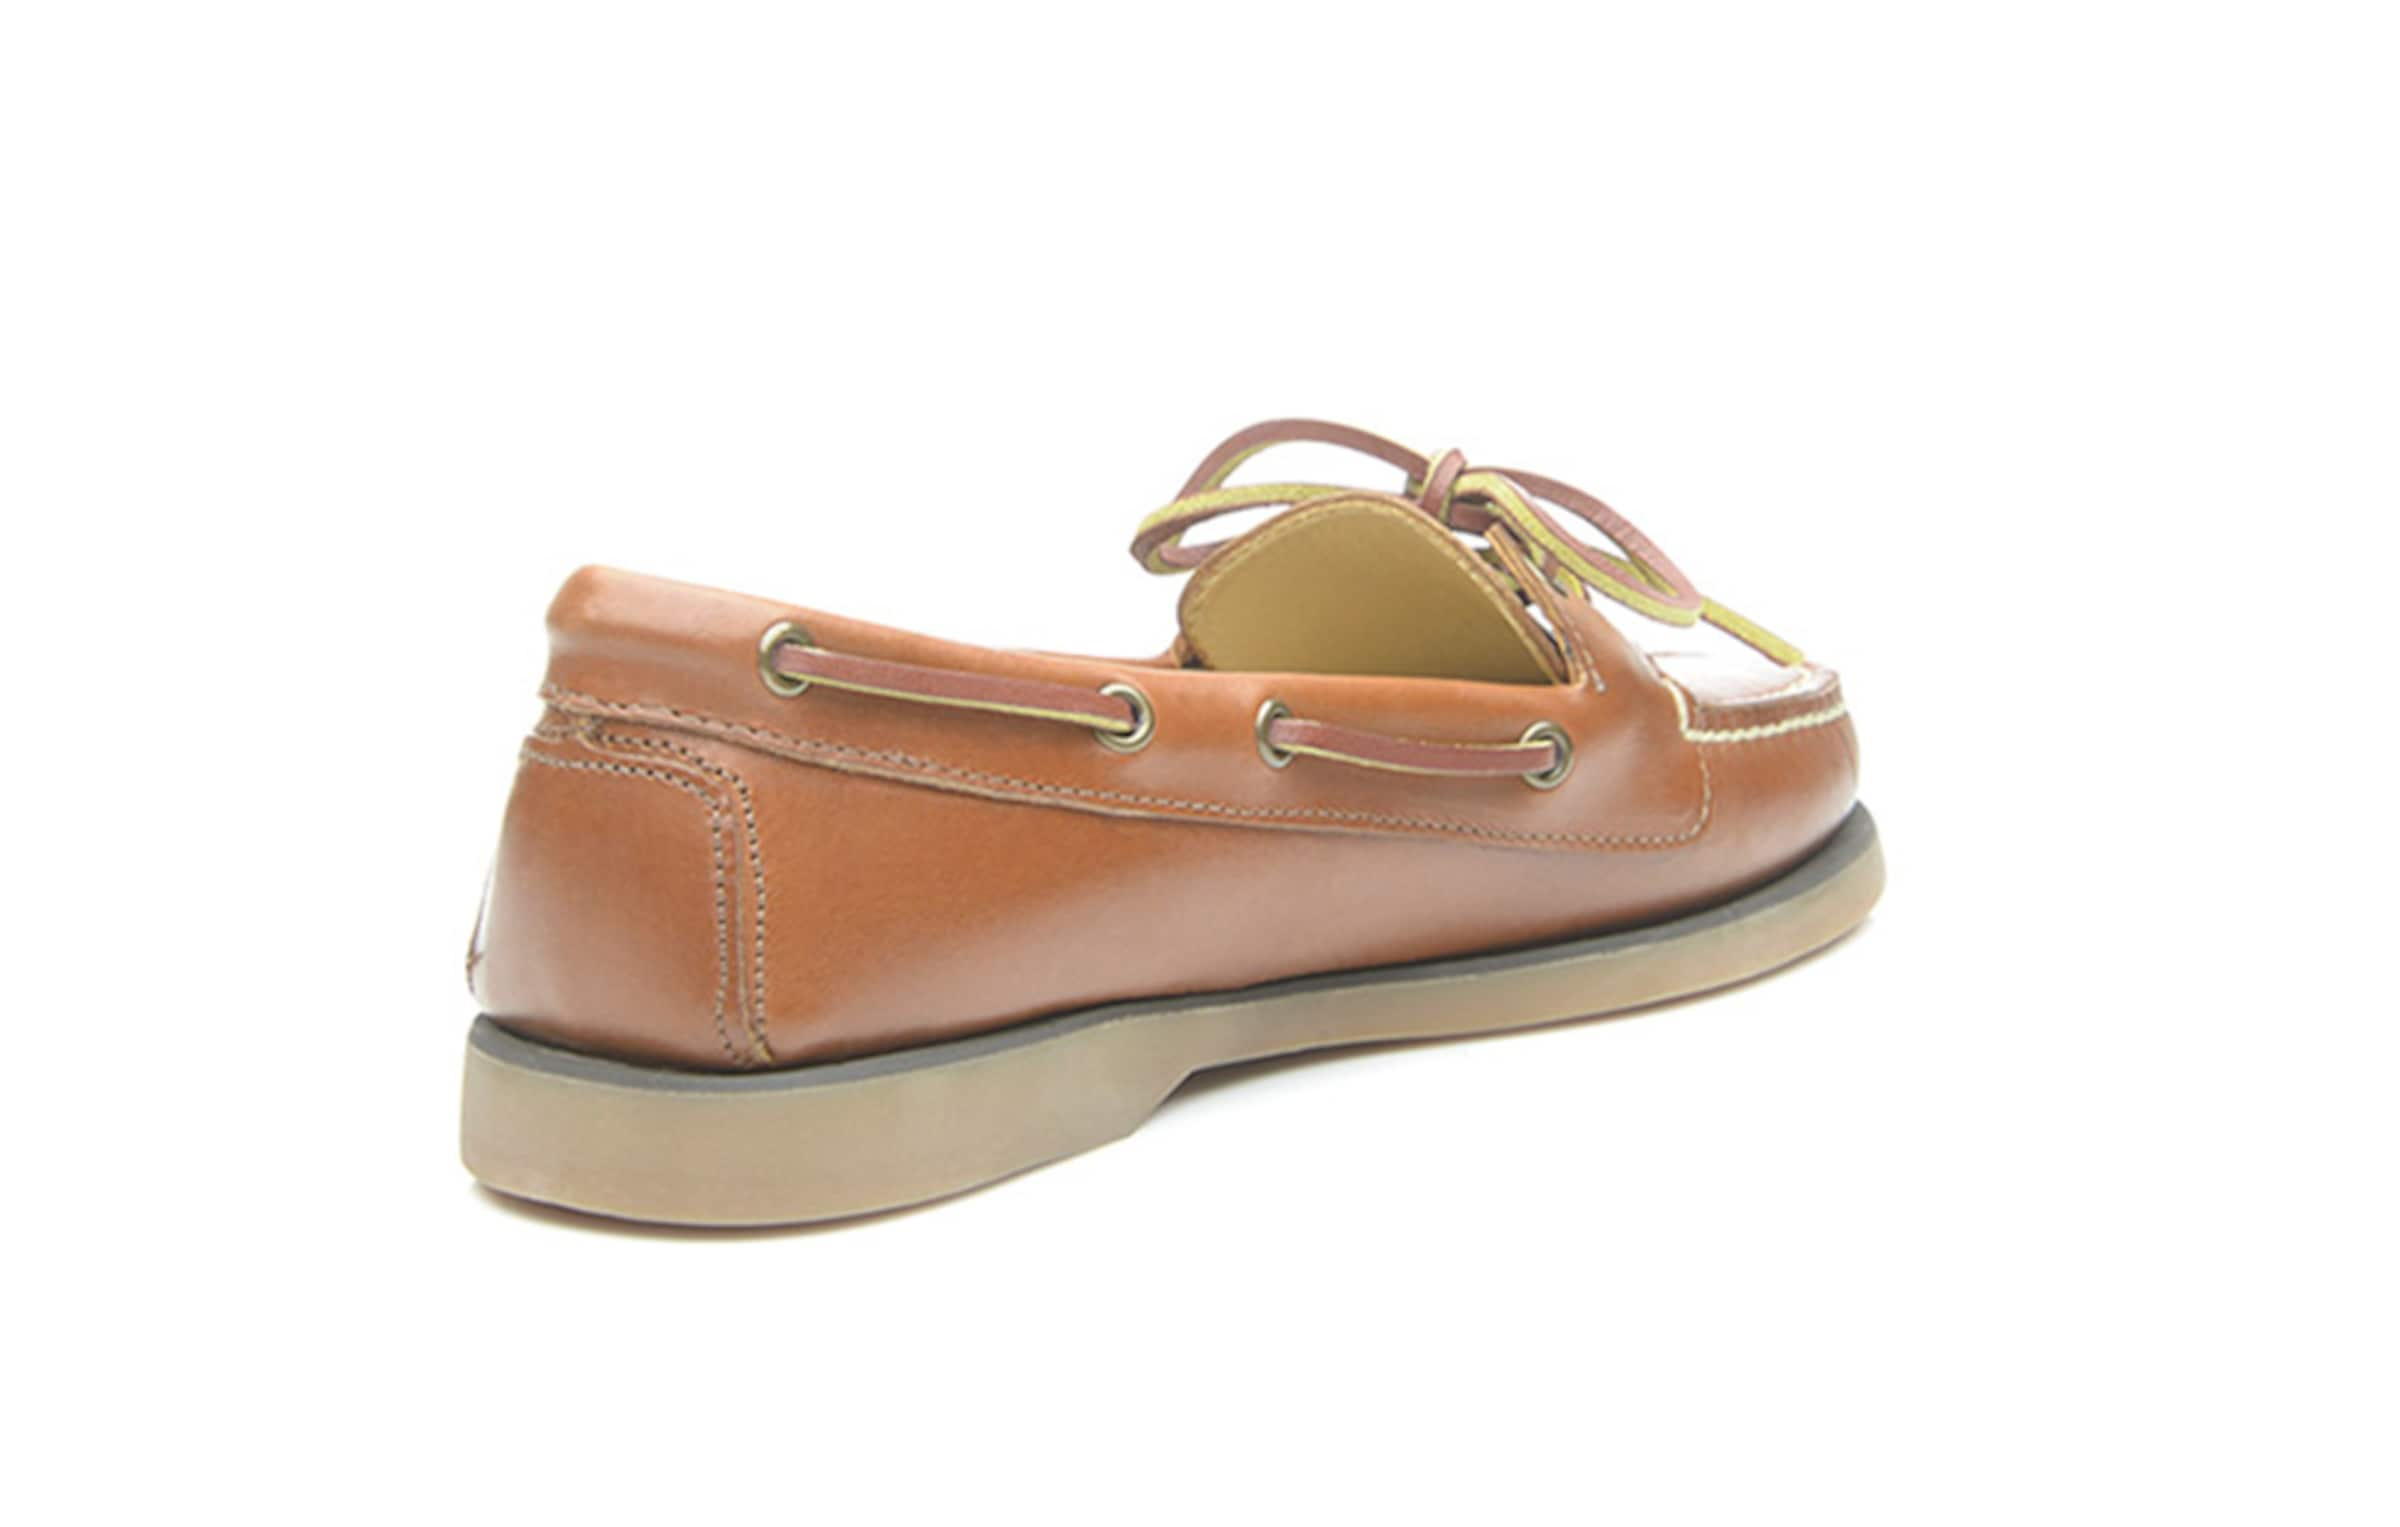 Wb' 'no12 Cognac Bootsschuhe In Shoepassion 8nNwvOm0